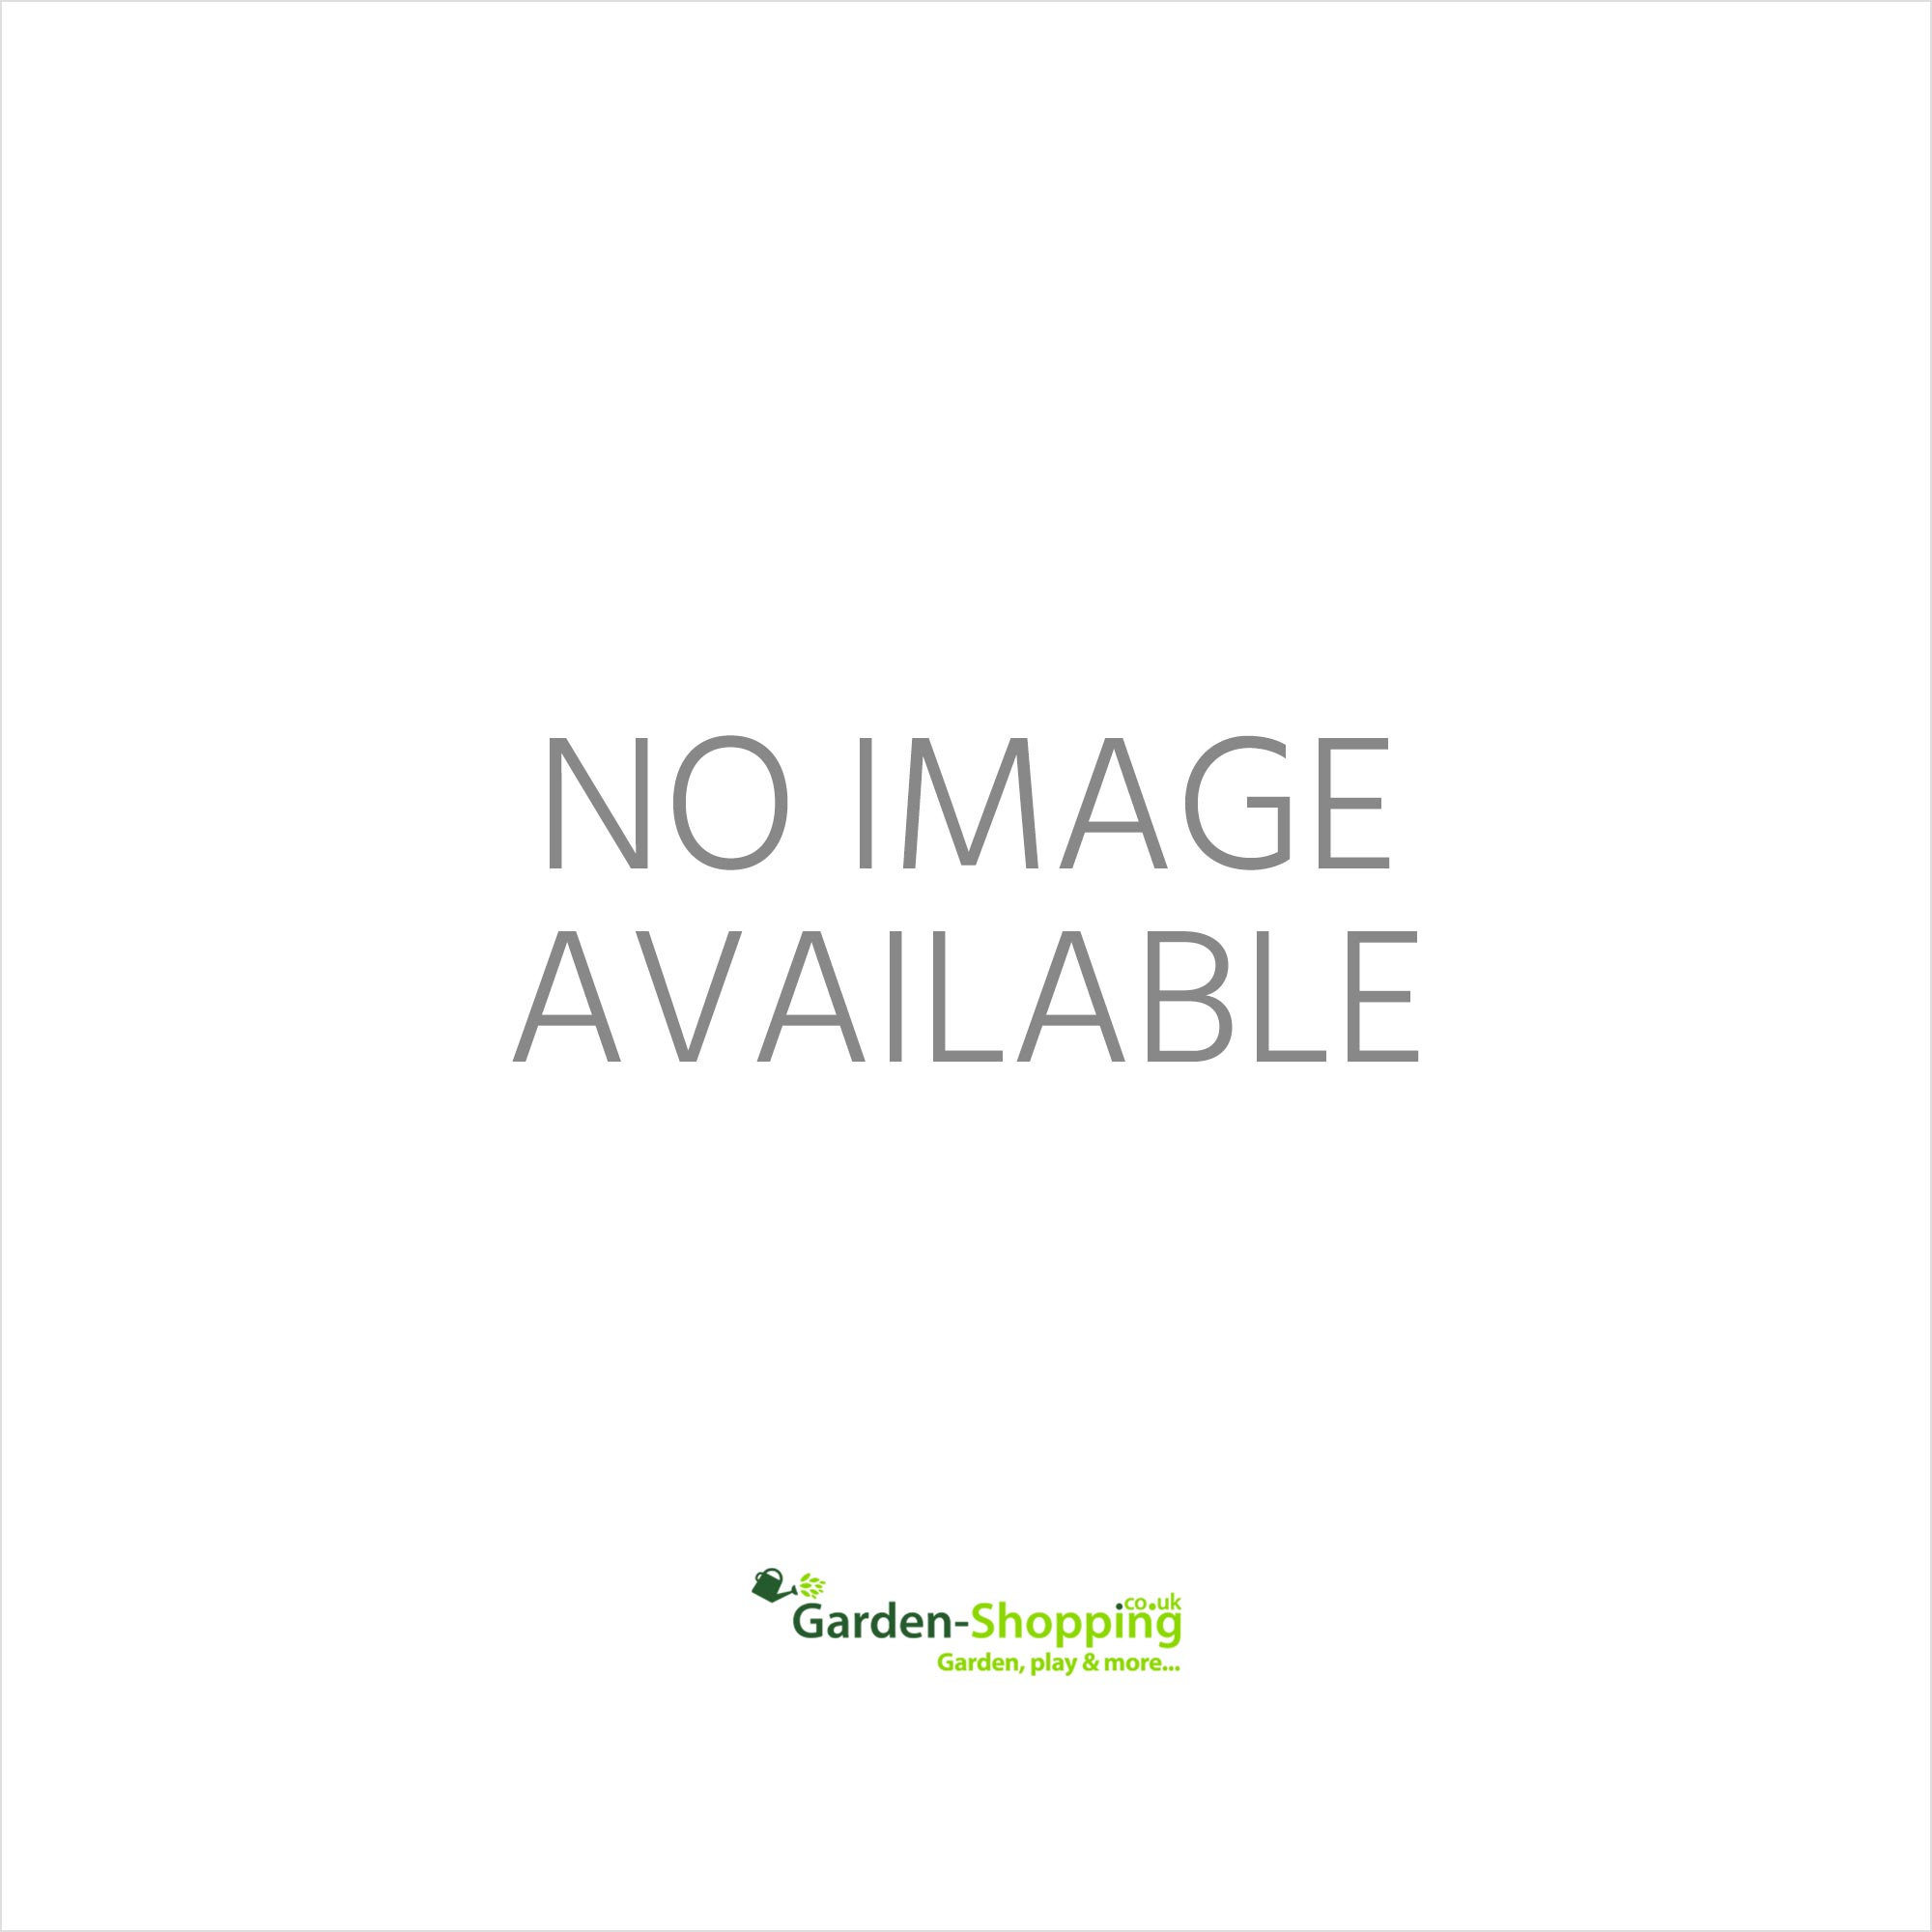 Flower Pot Man - With Lawnmower